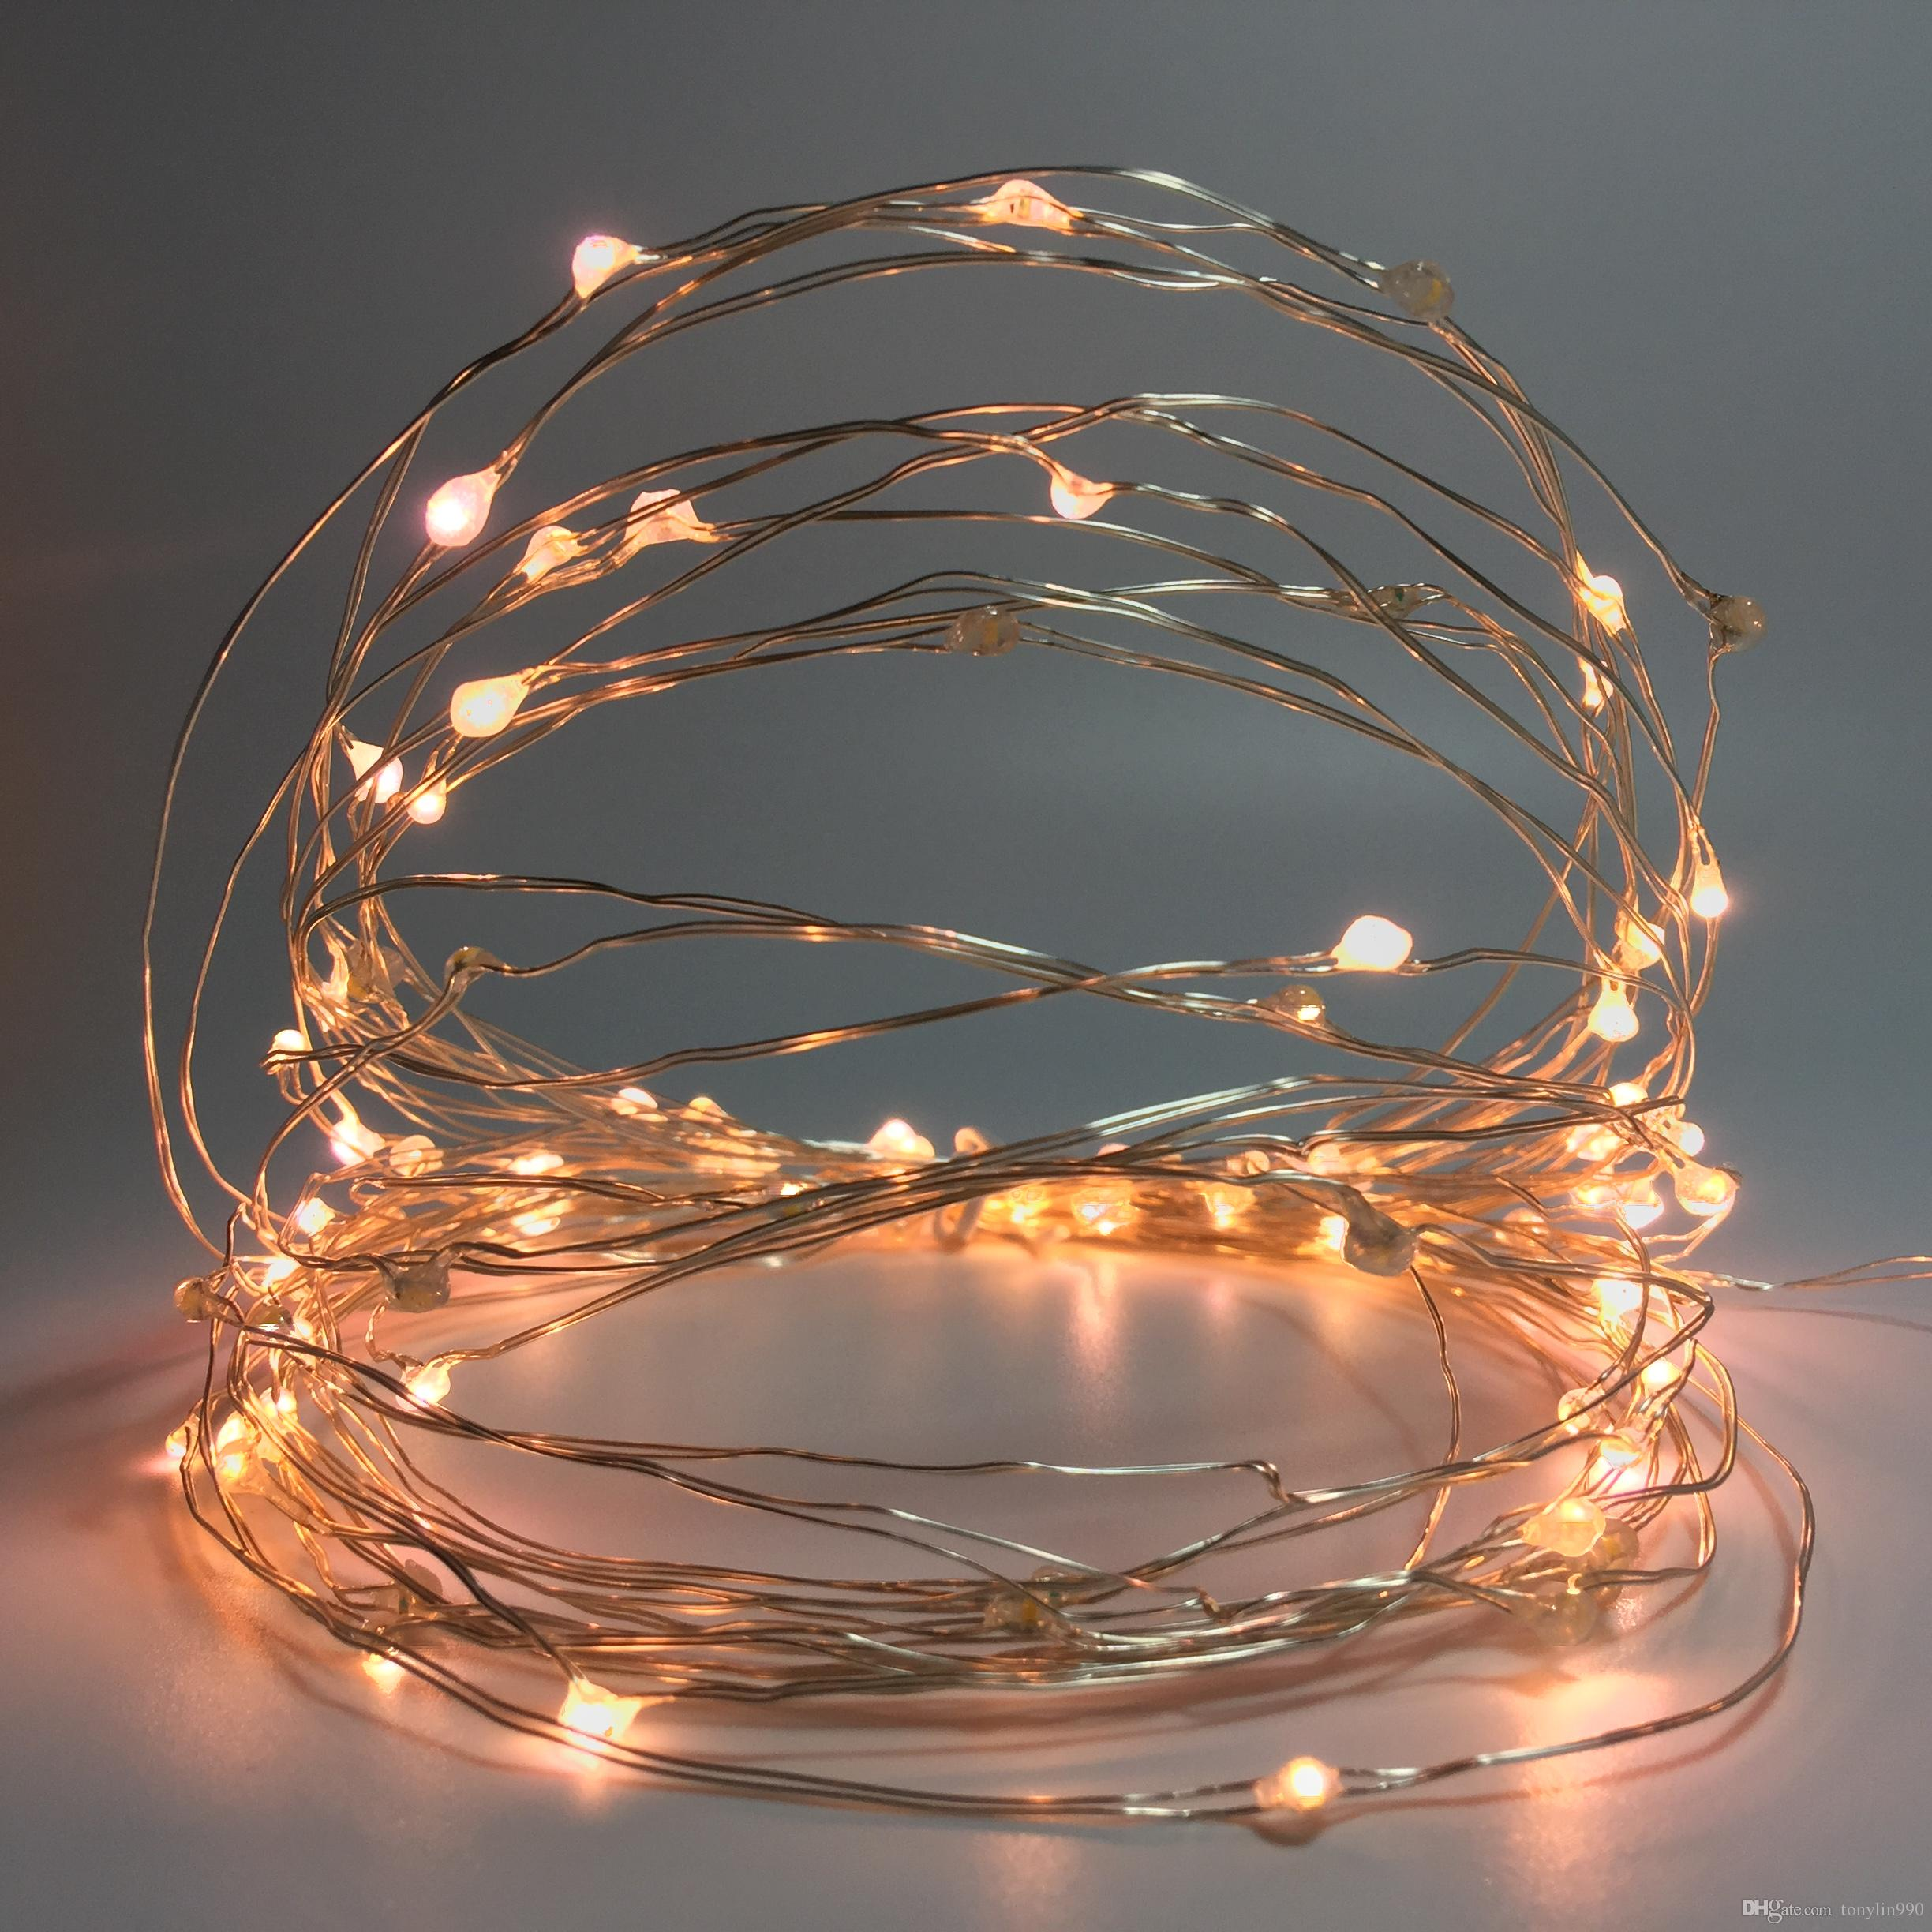 33ft 100 Twinkling Leds Warm White Starry String Lights With 8 ...